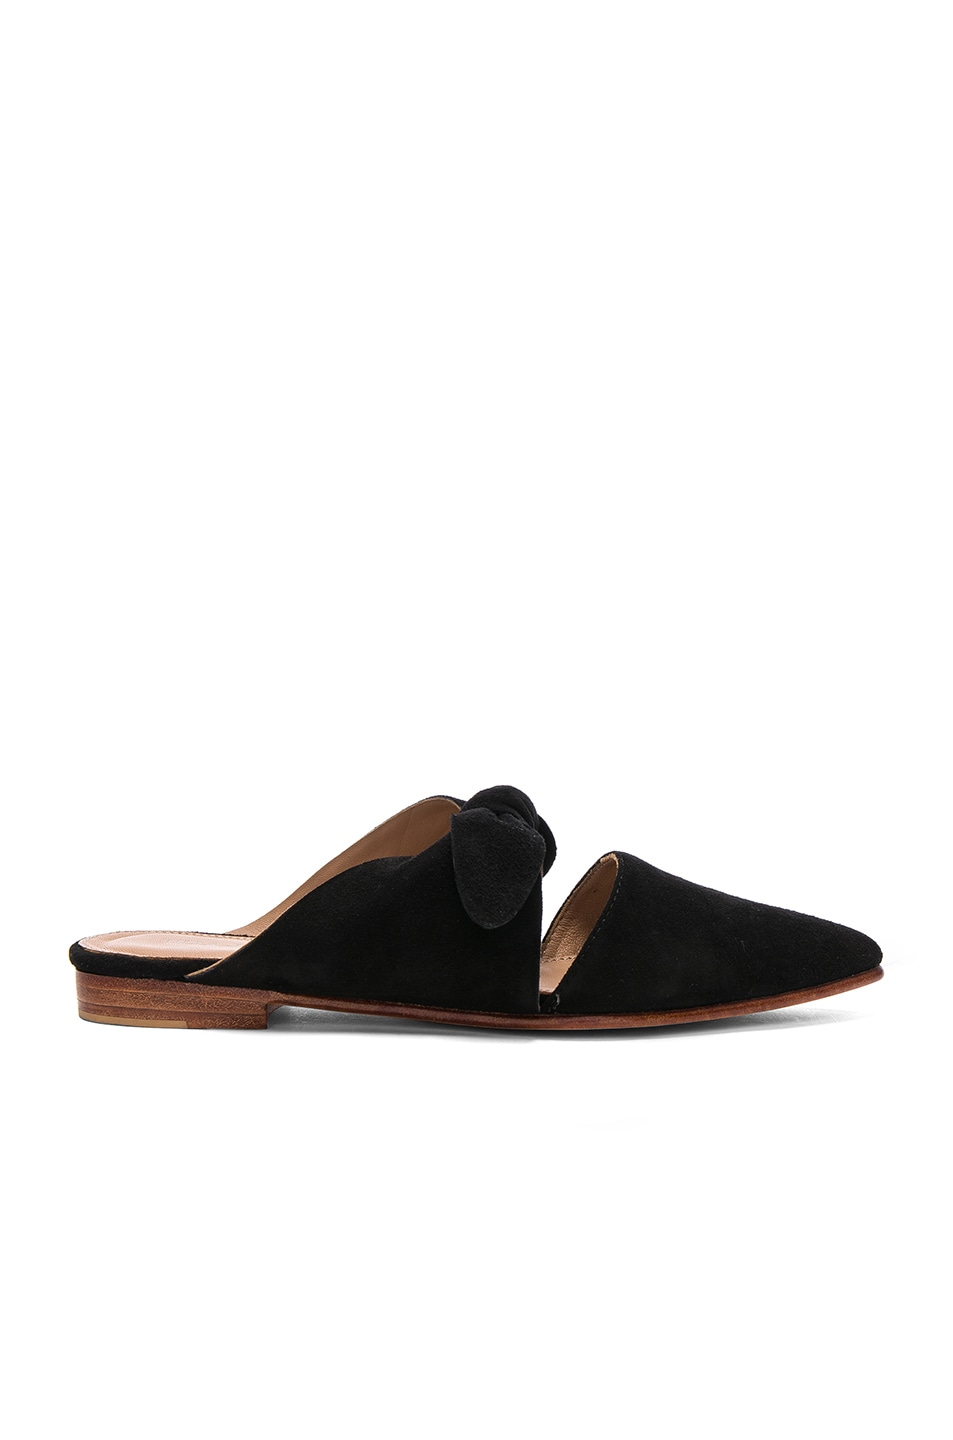 Image 1 of Ulla Johnson Suede Lilo Babouche Mules in Noir